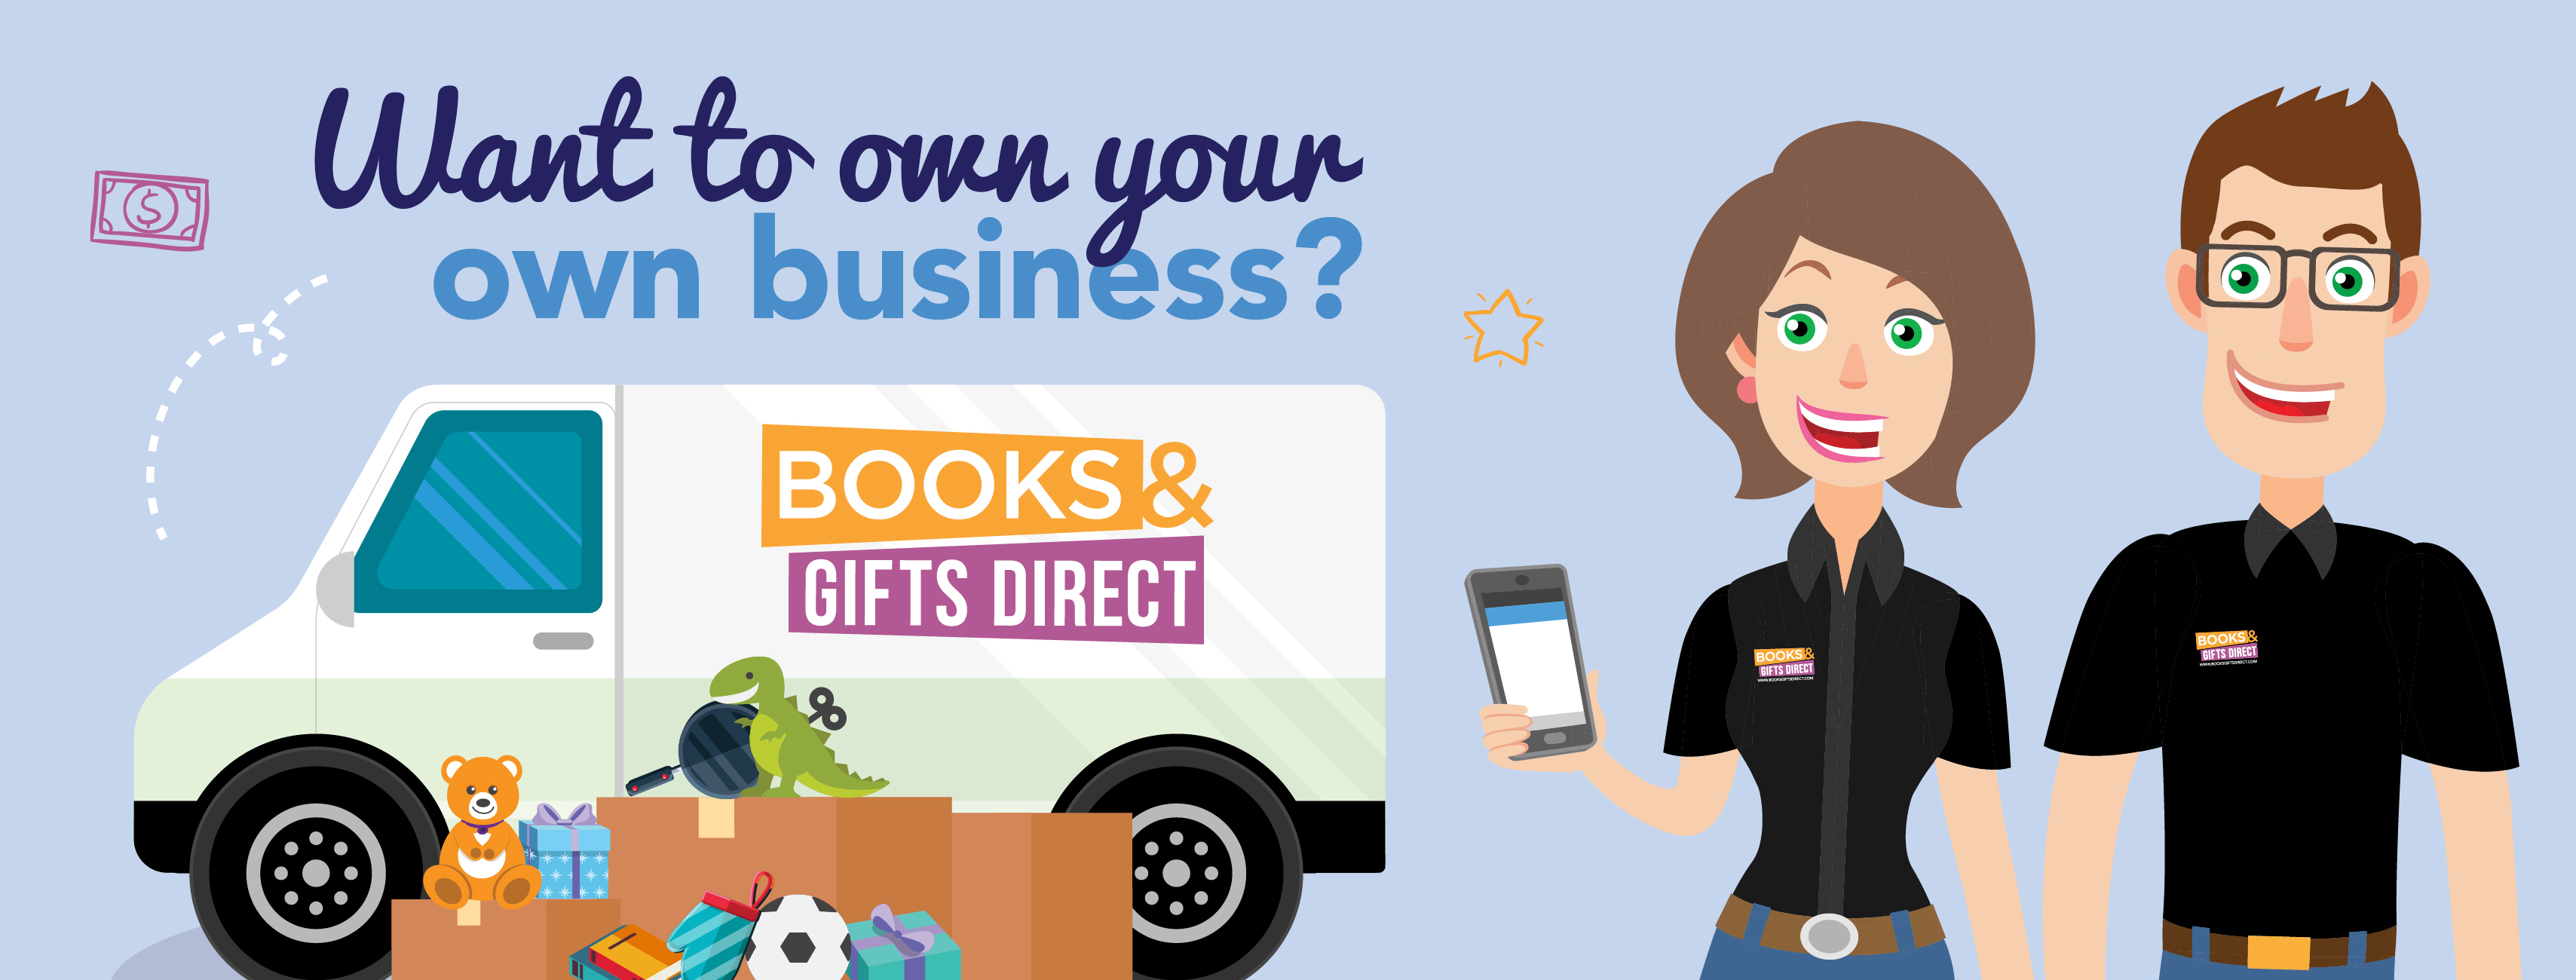 Books & Gifts Direct Franchise For Sale - Cardiff